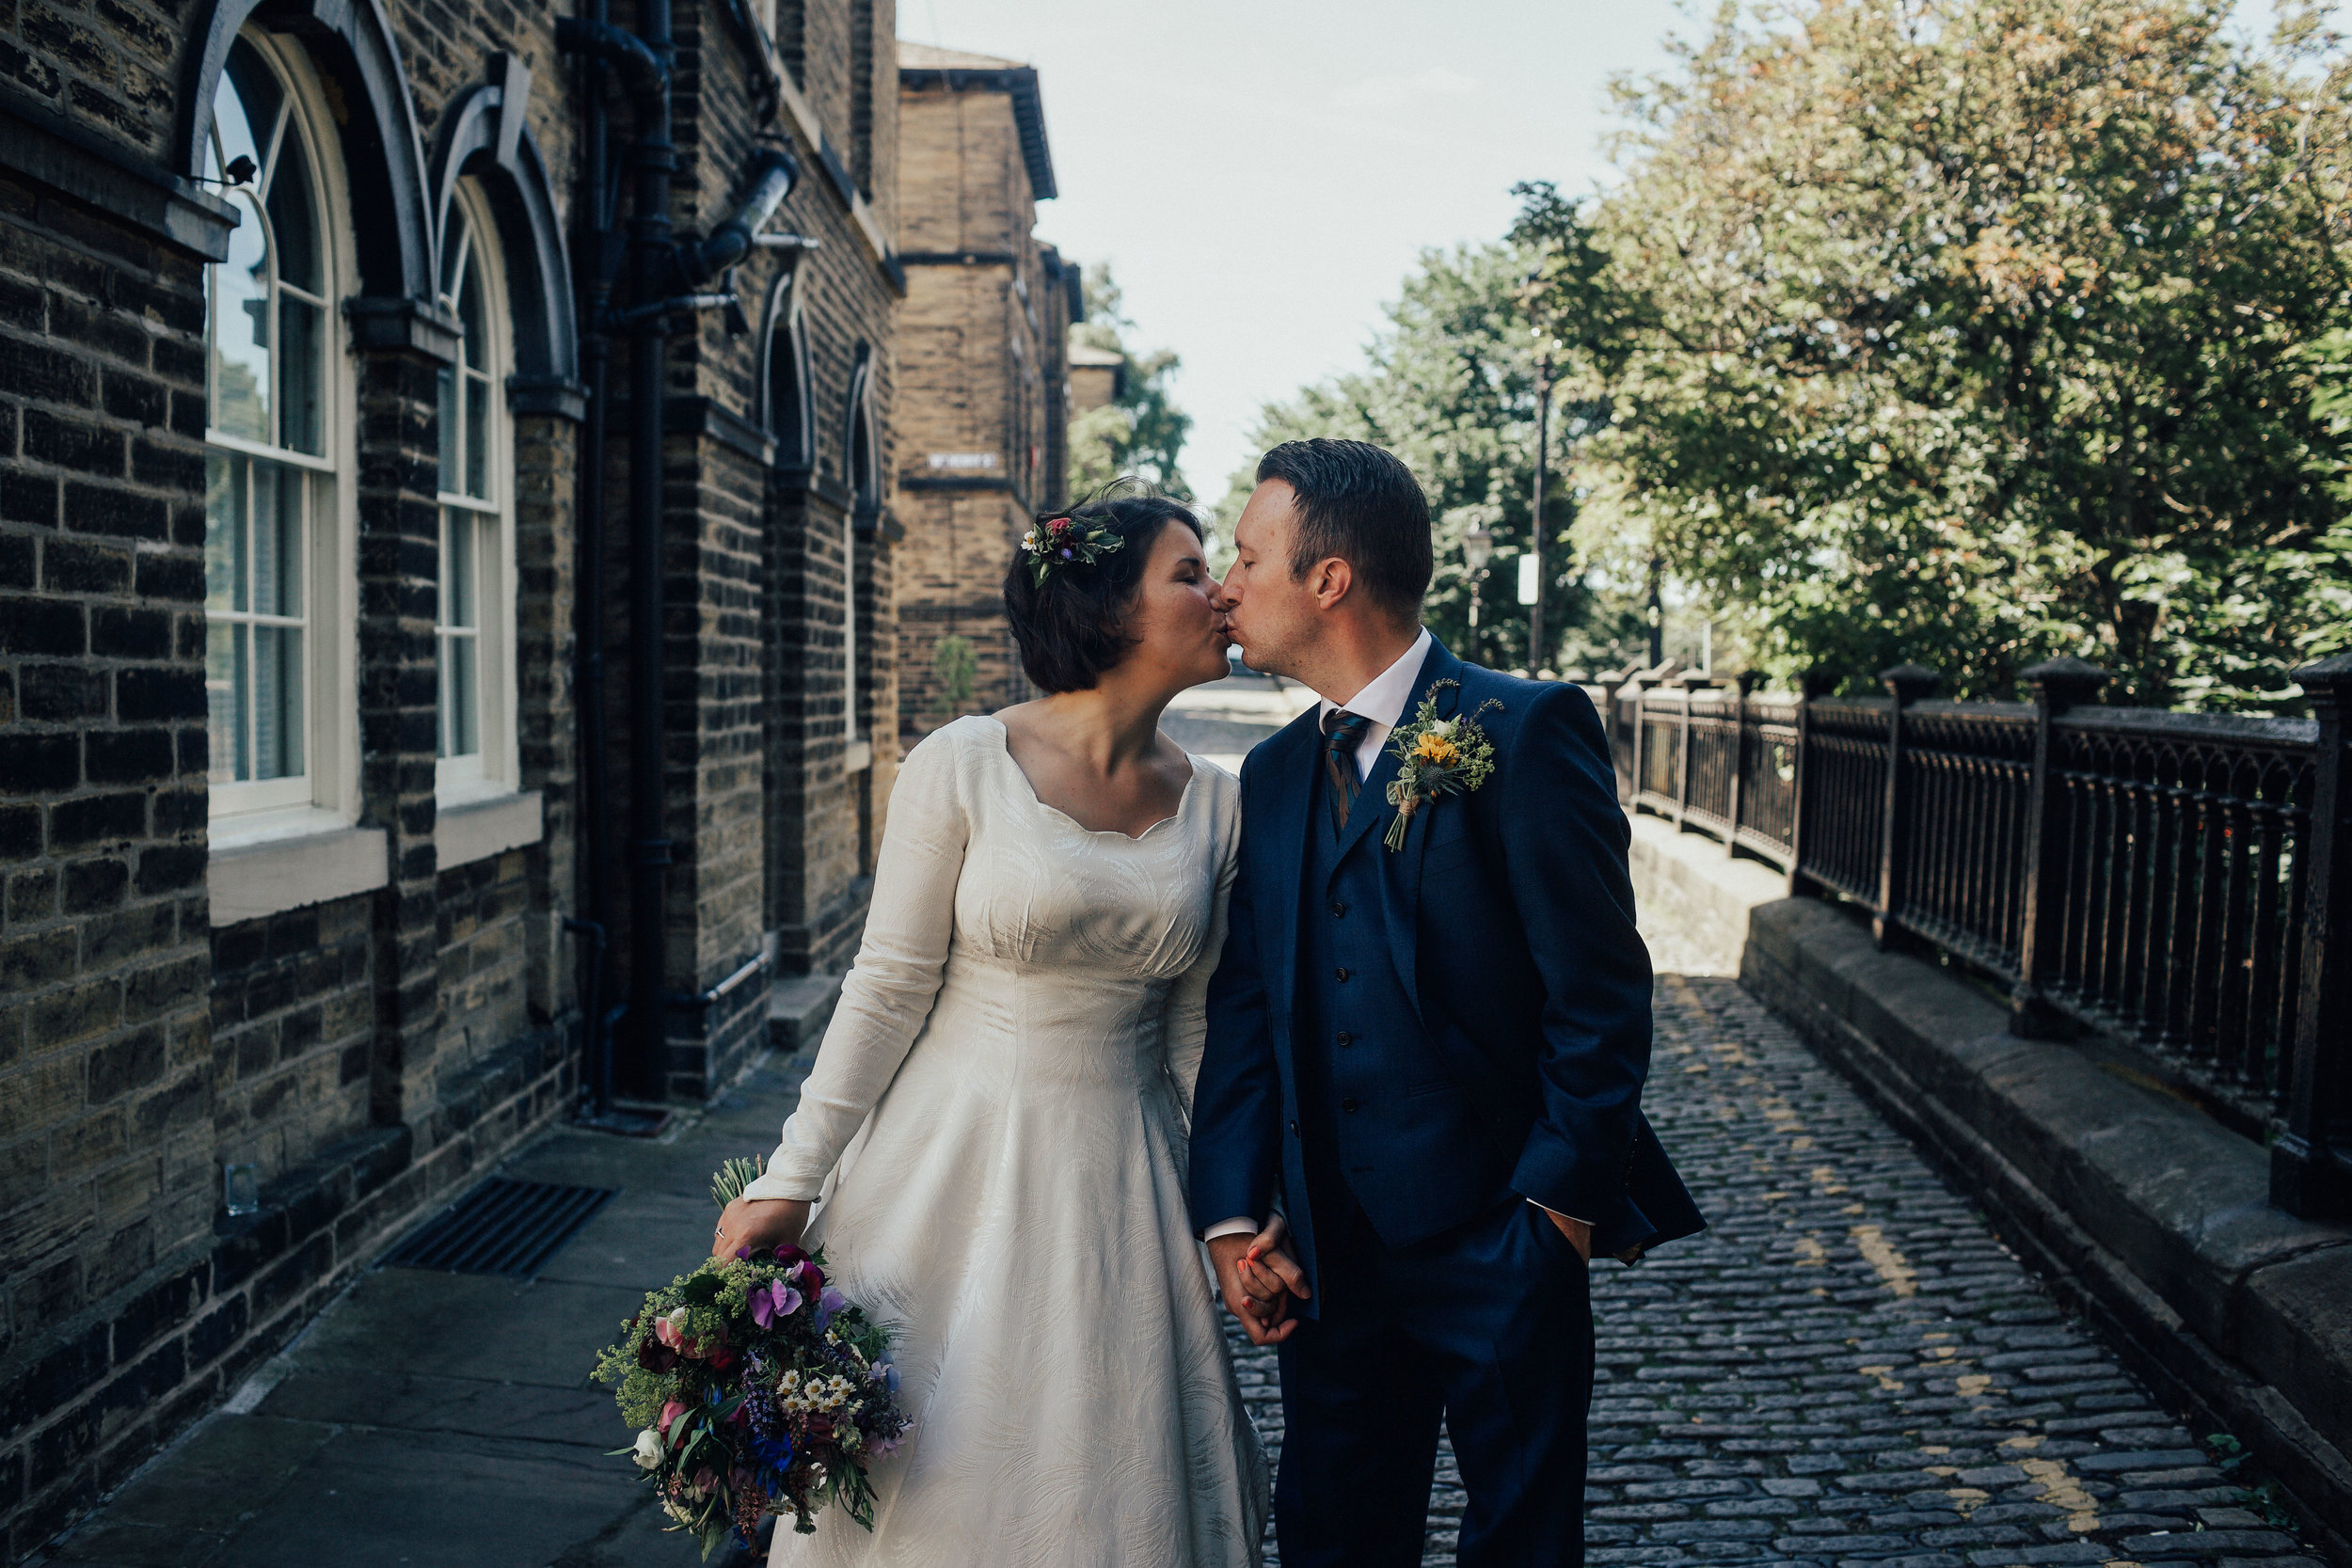 VICTORIA_HALL_SALTAIRE_VINTAGE_YORKSHIRE_WEDDING_PJ_PHILLIPS_PHOTOGRAPHY_65.jpg